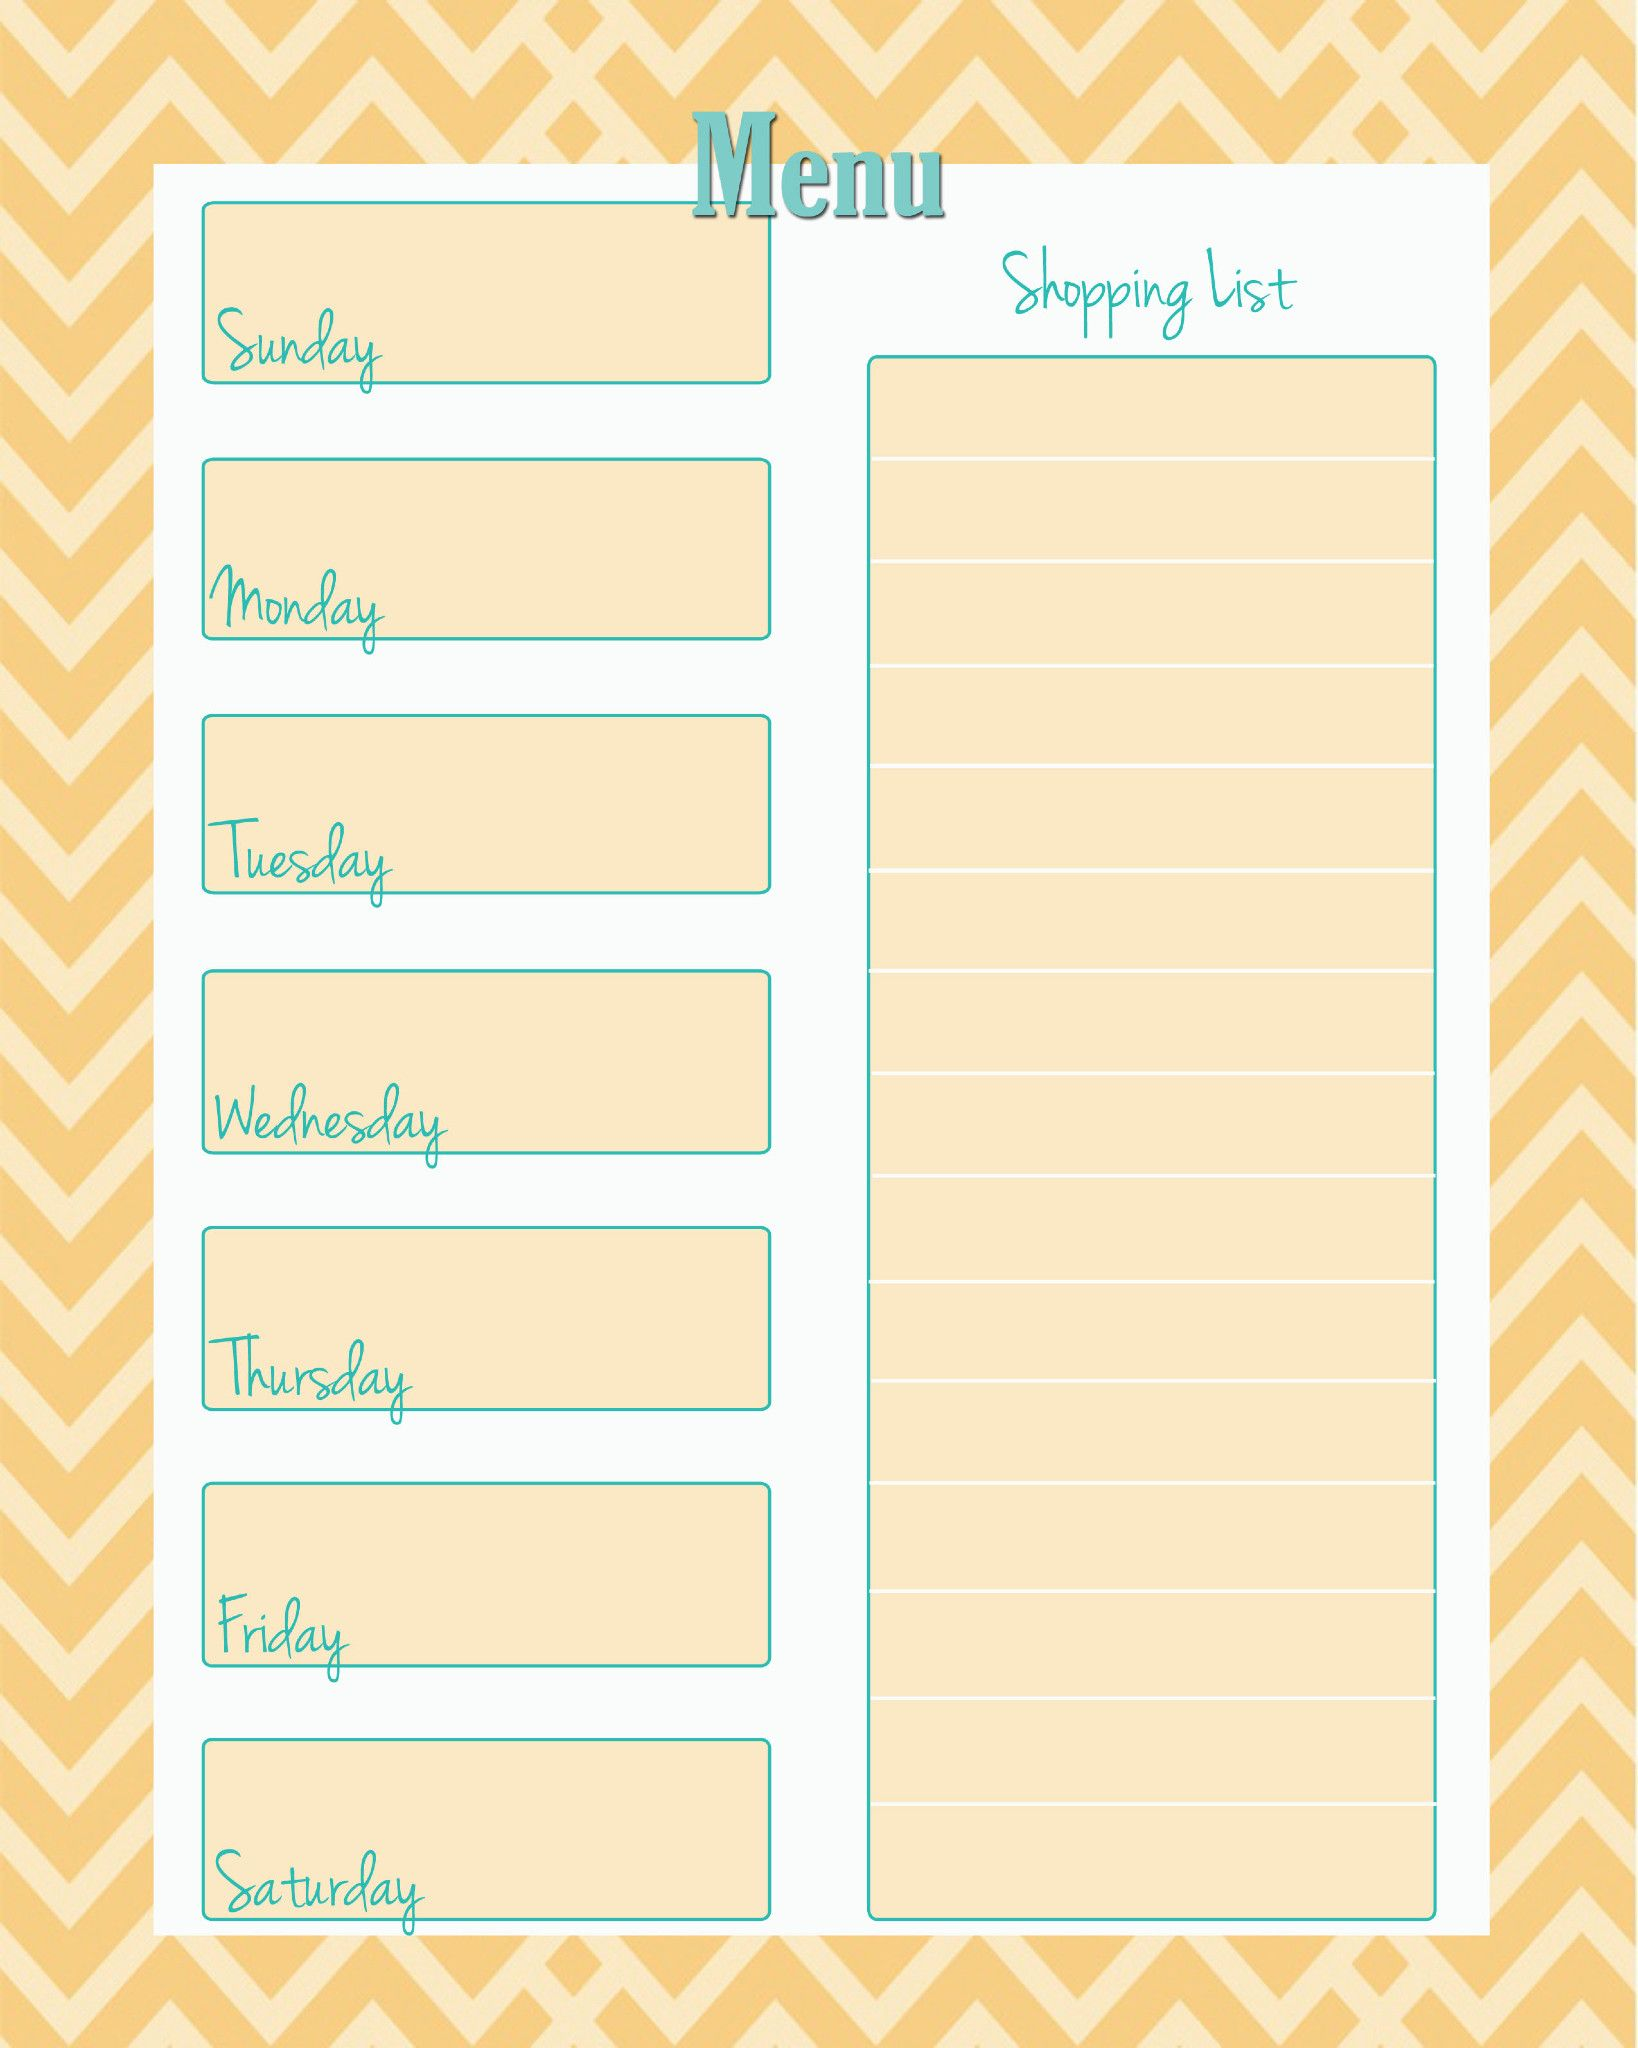 FREE Weekly Menu Planner Printable (4 Colors | Ausdrucken